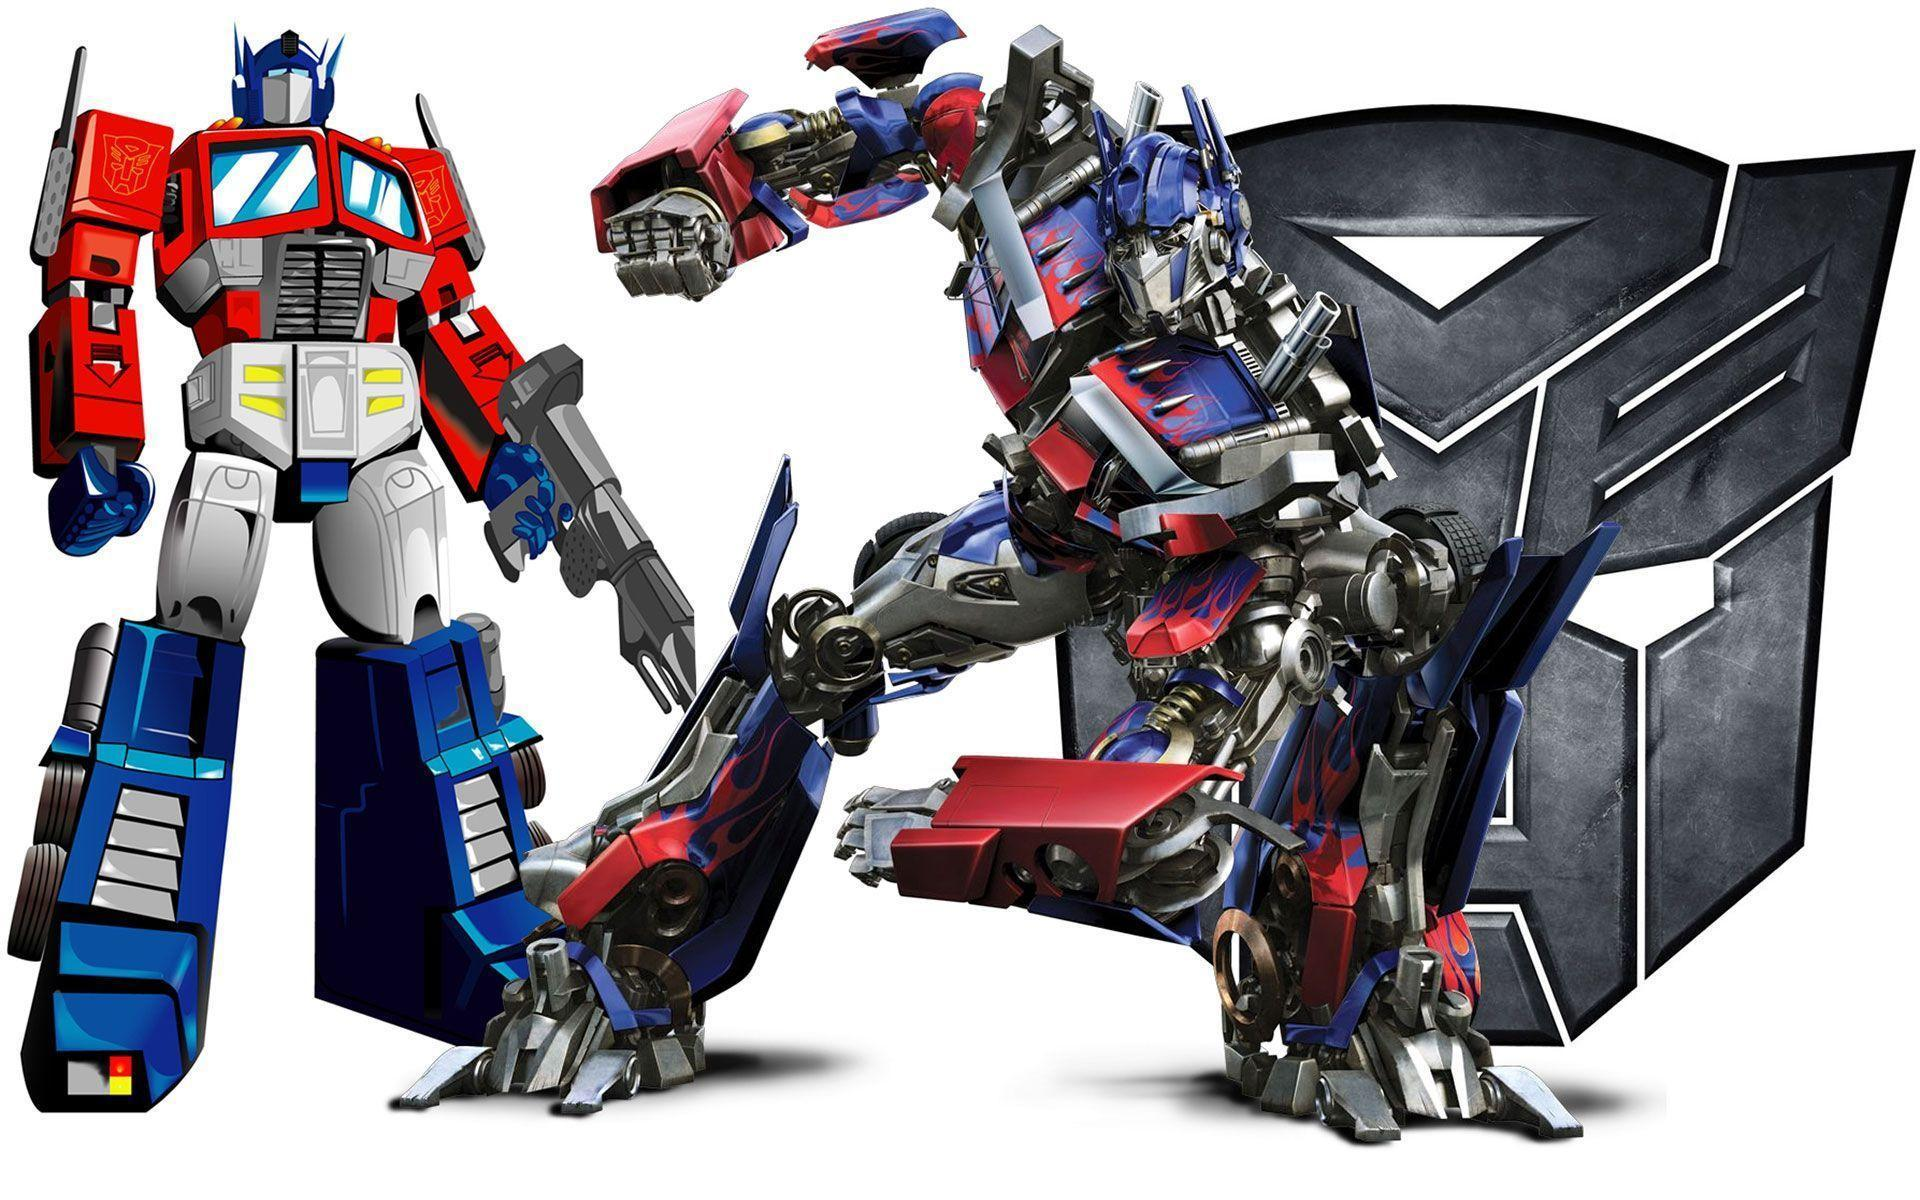 Imagenes De Transformers: Transformers Optimus Prime Wallpapers